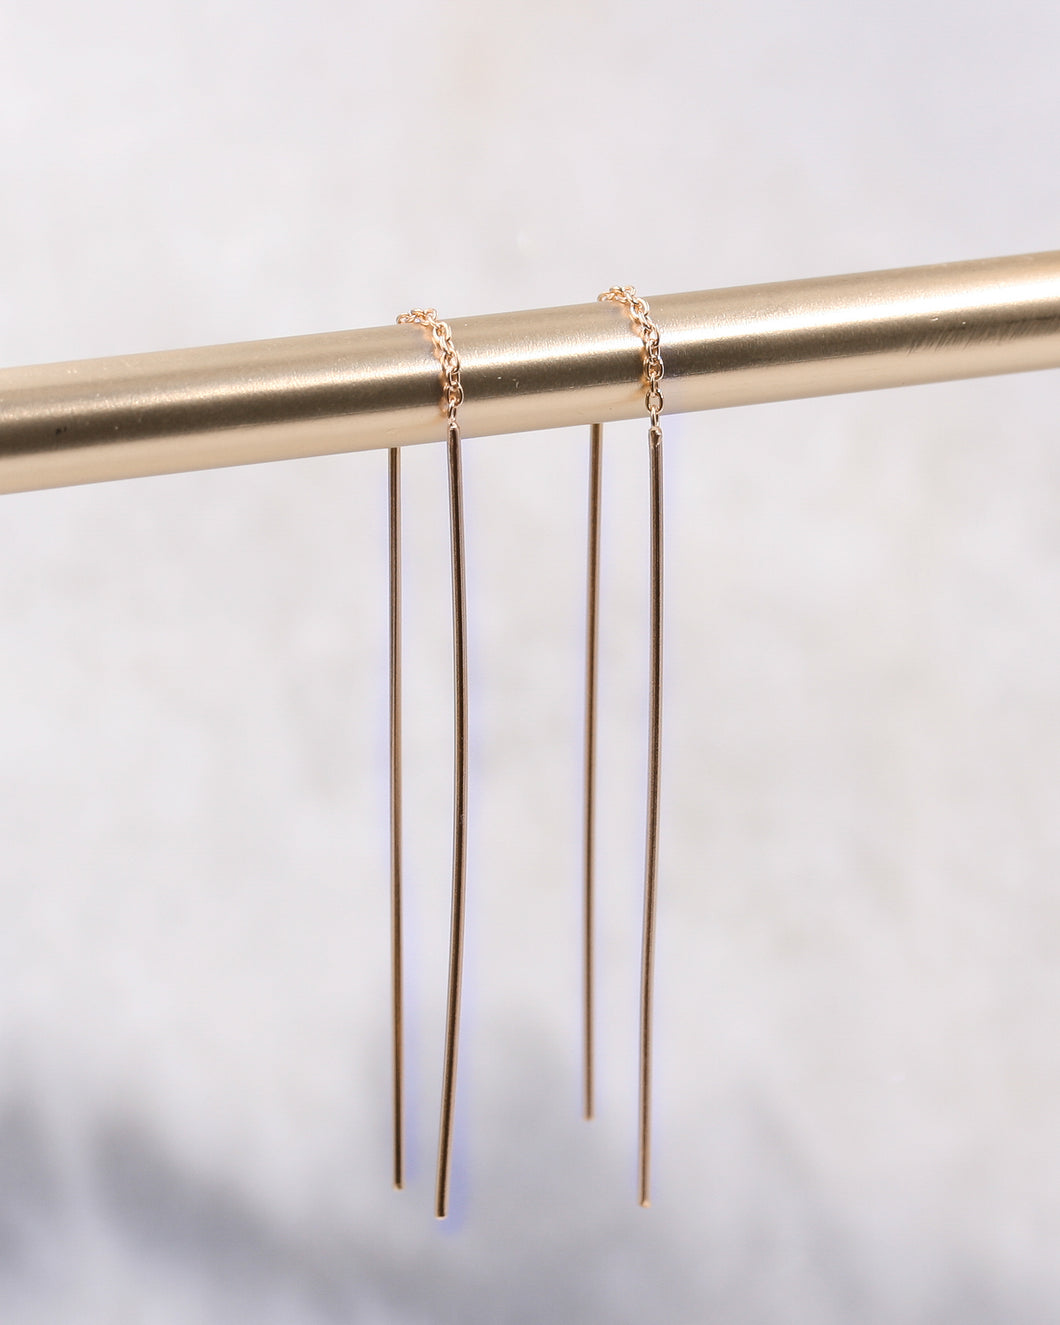 Delicate long fine bar earrings in rose gold